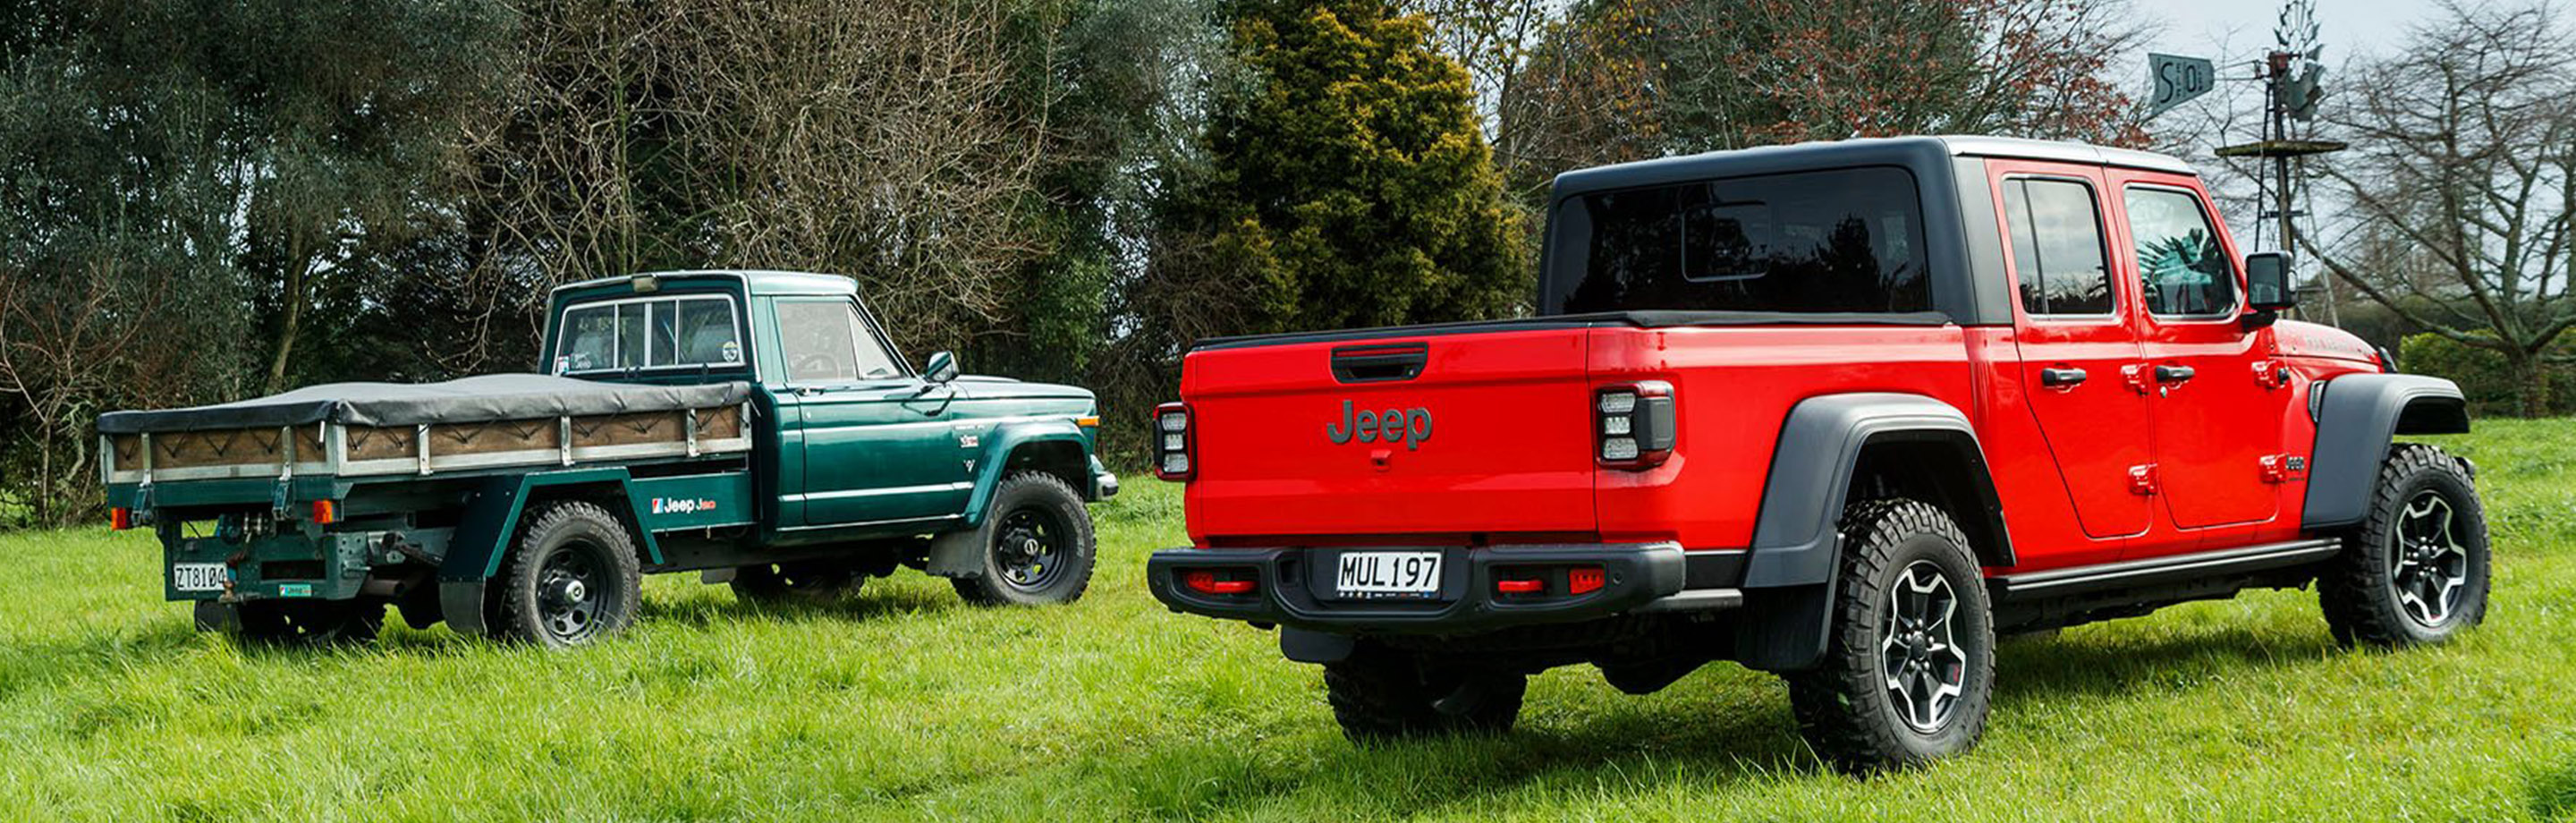 Jeep Gladiator meets the Gladiator J20